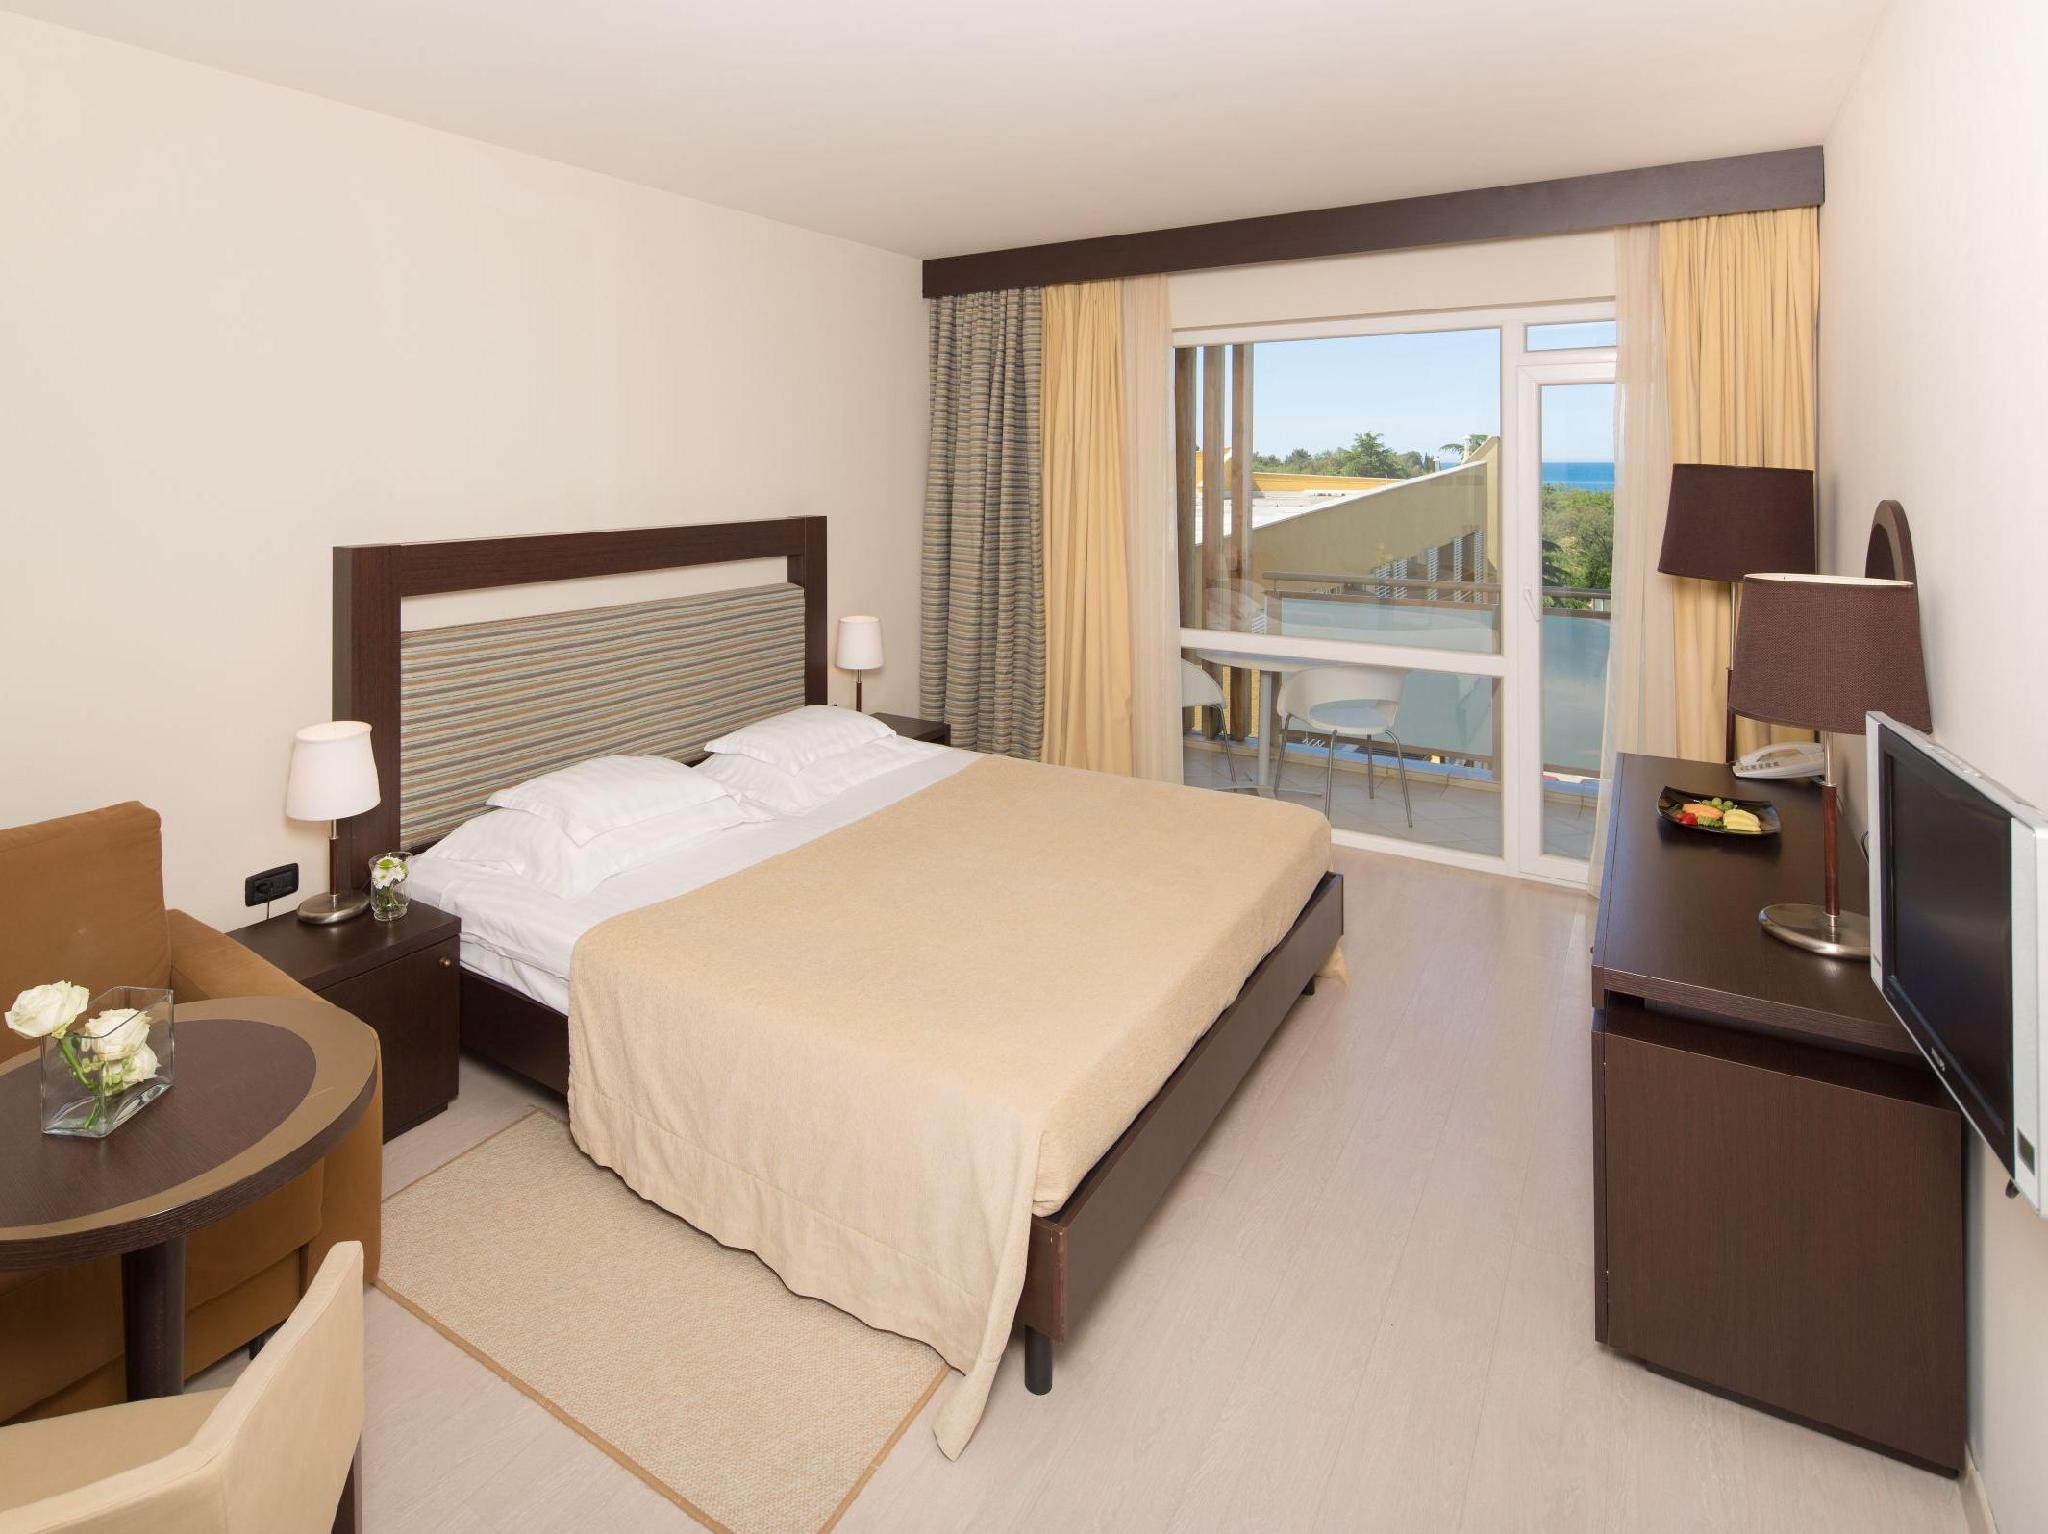 Quarto Familiar Lado Marinho (Family Room Sea Side)